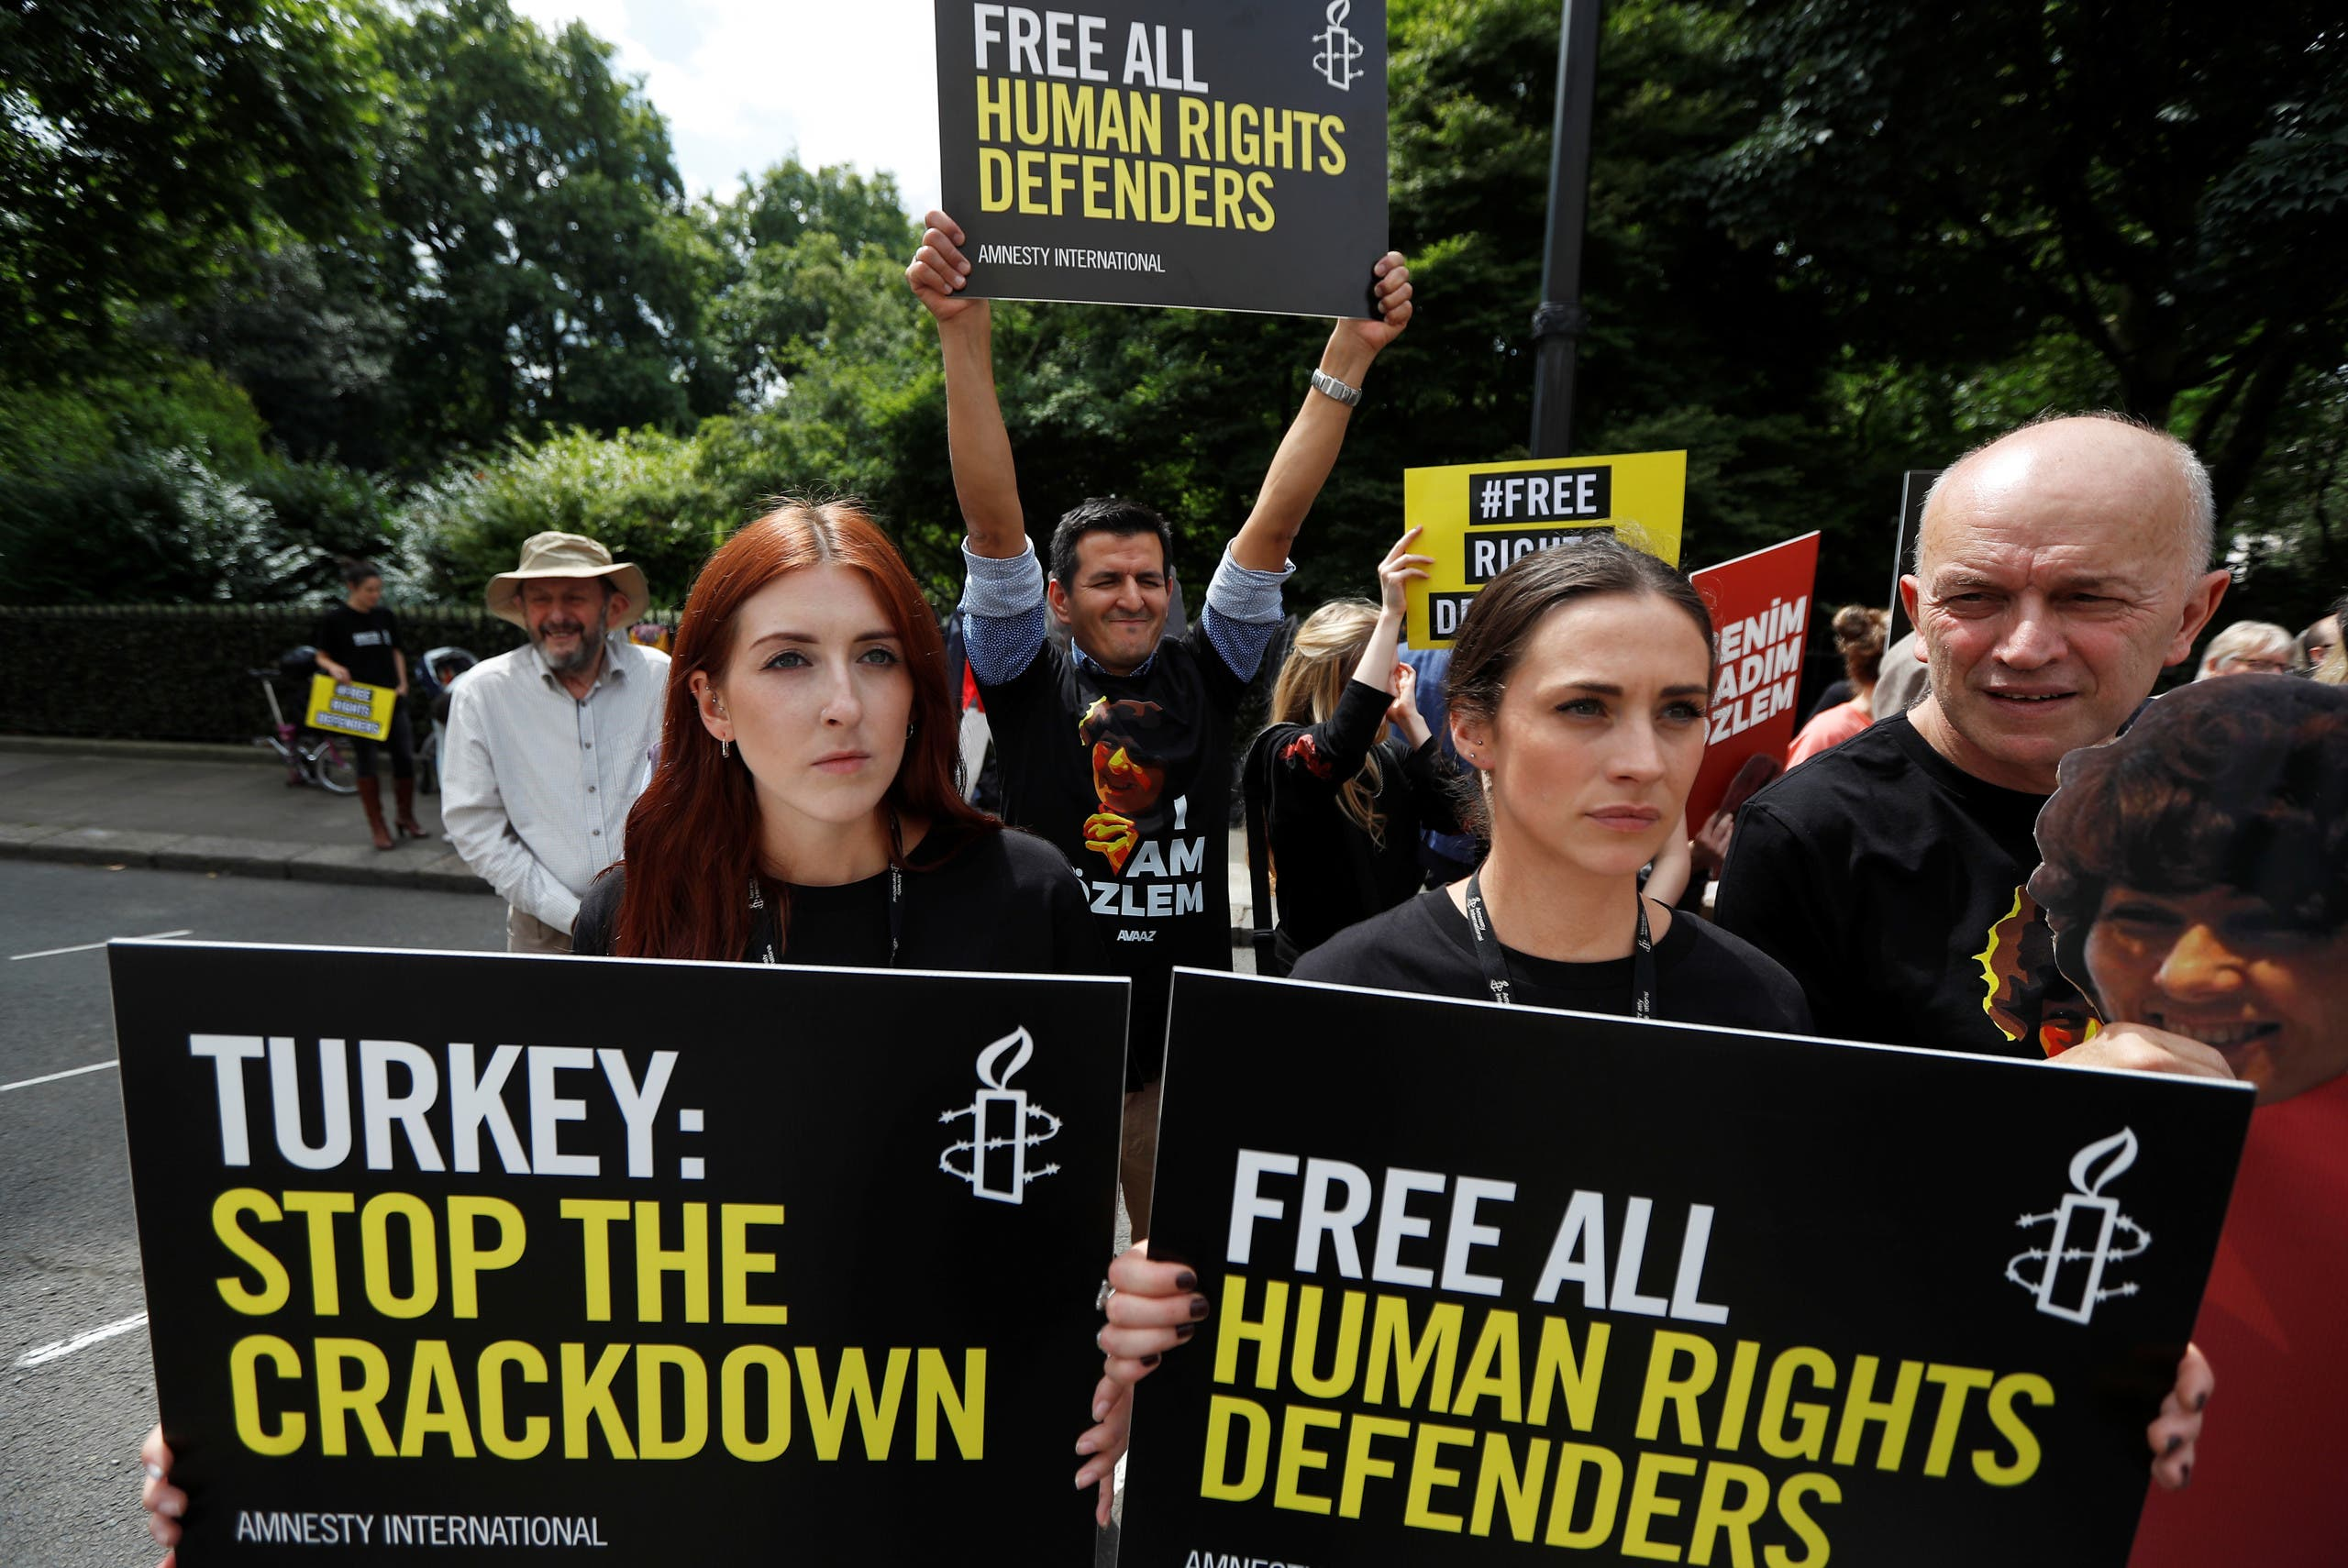 Demonstrators protest outside Turkey's embassy in London, Britain July 25, 2017. (Reuters)